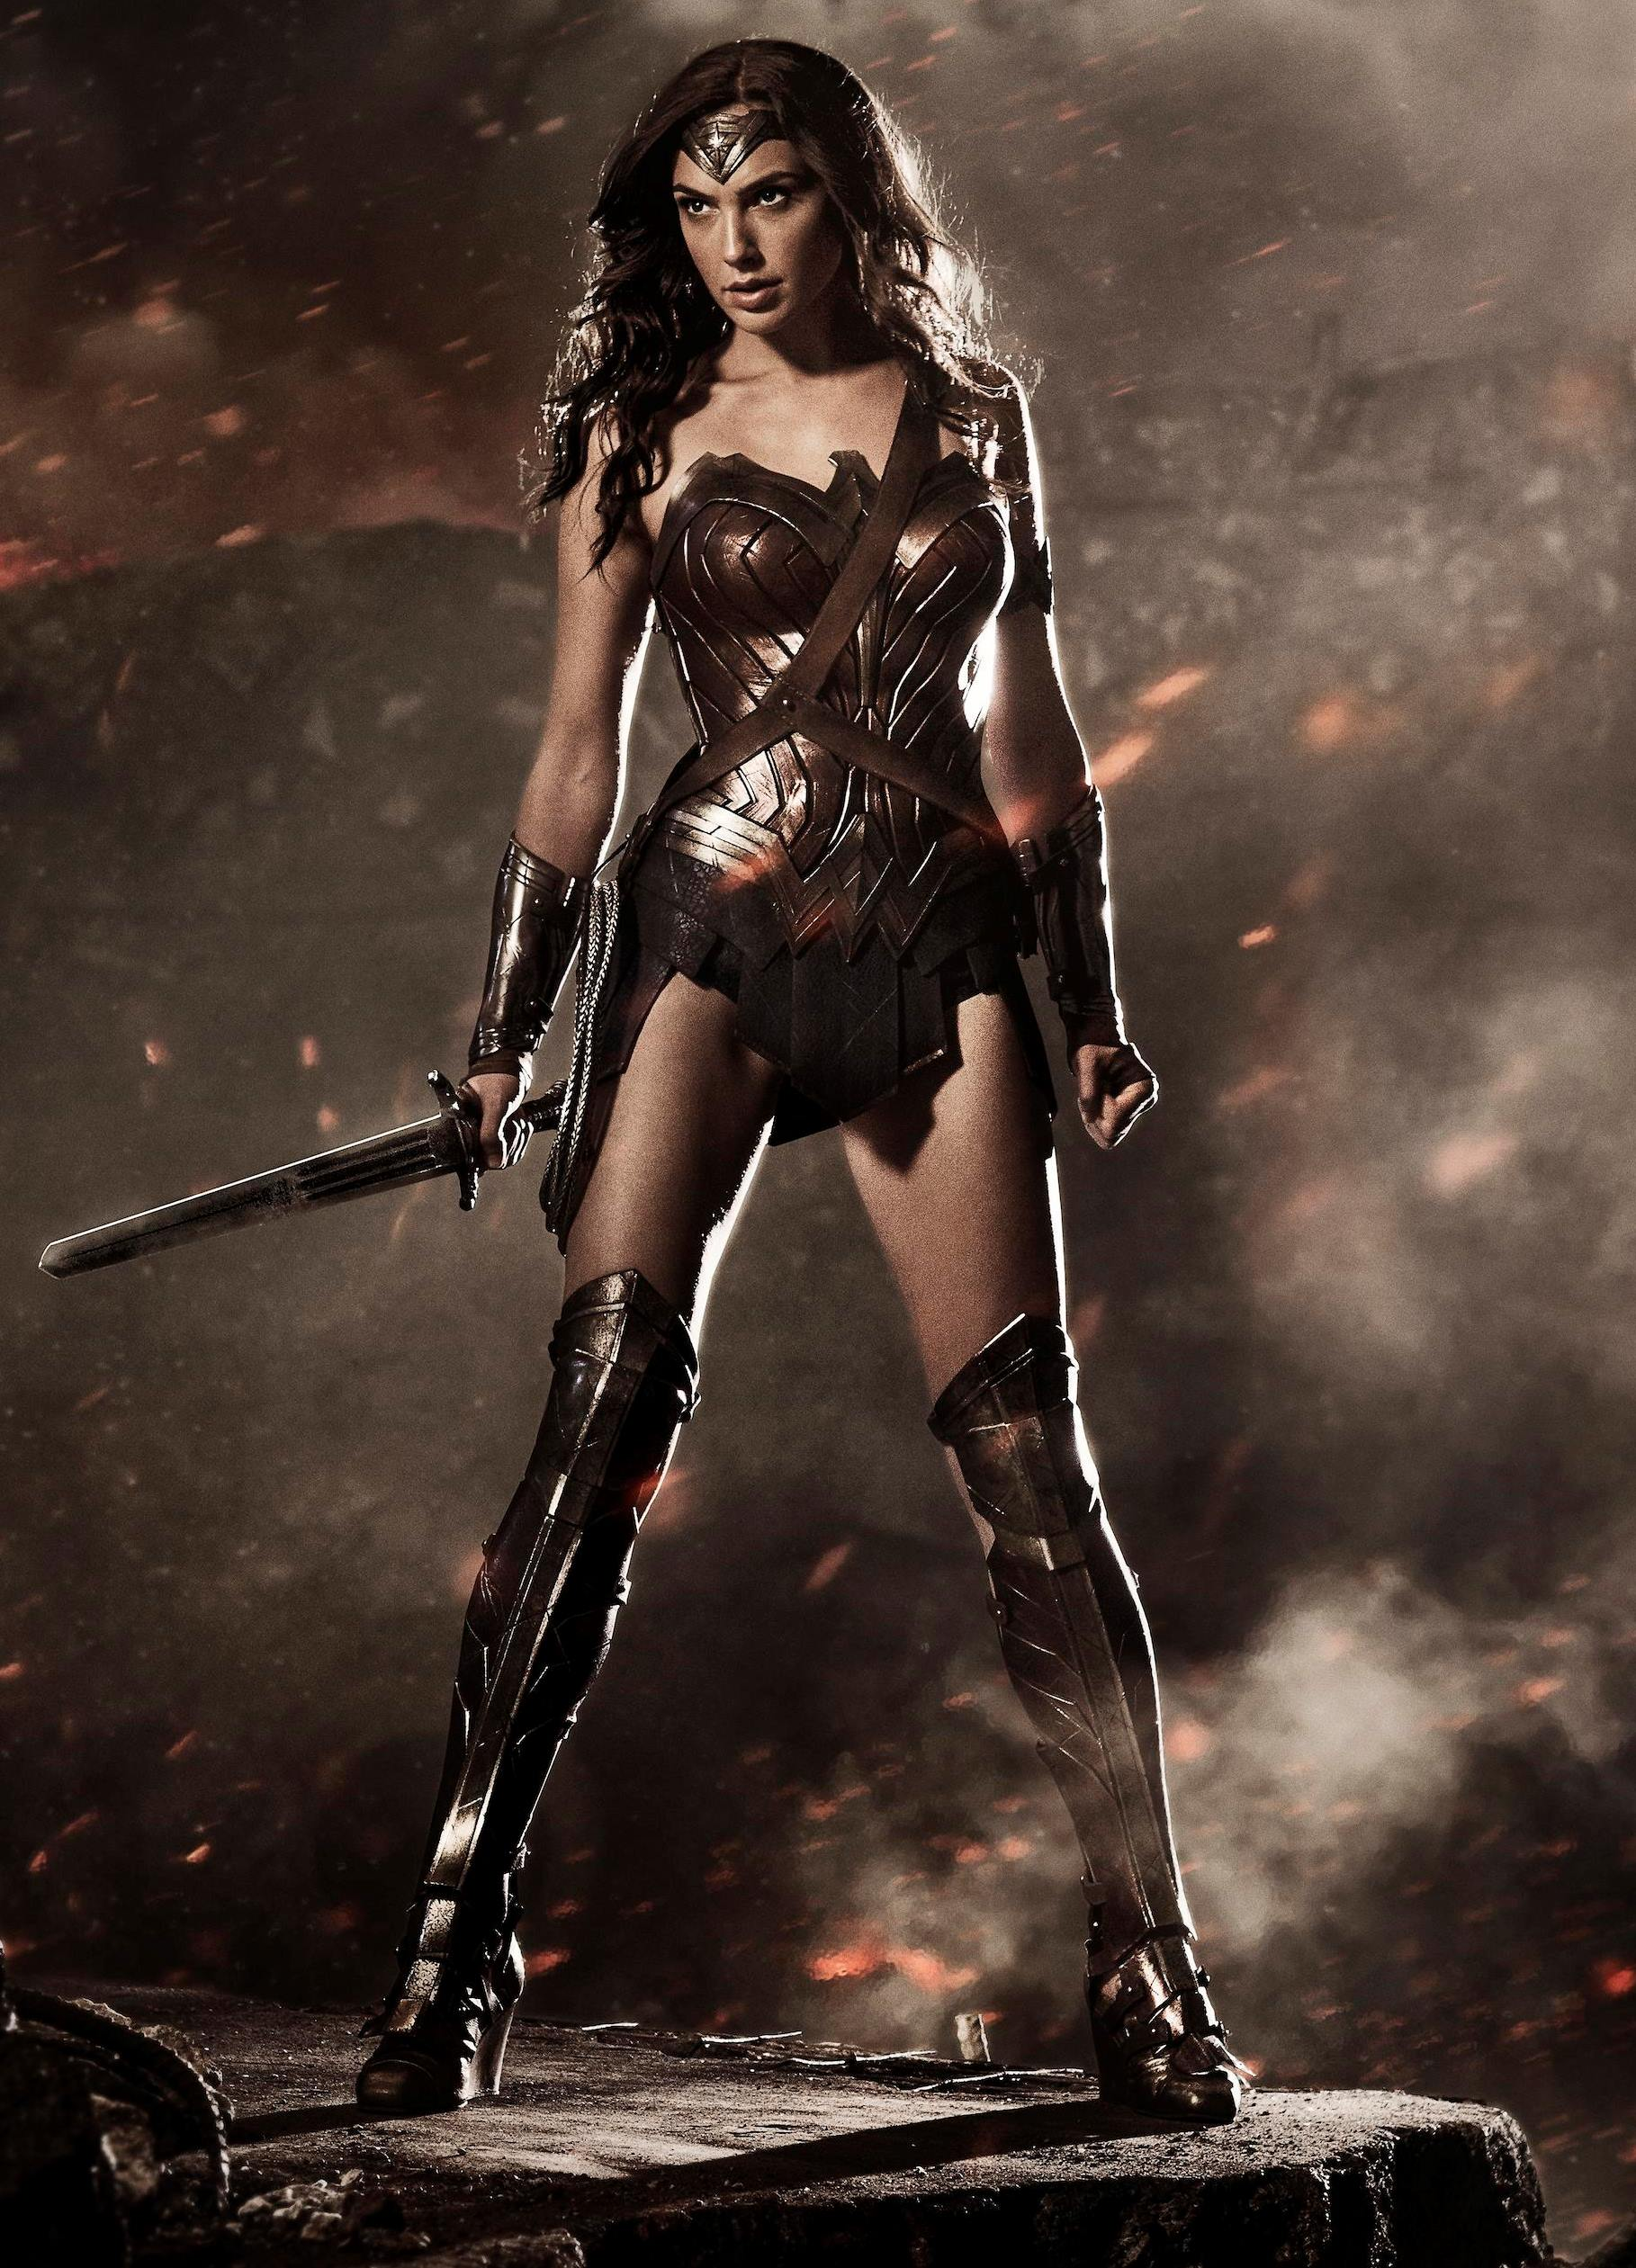 Wonder Woman Has the Best Rotten Tomatoes Score of Any DC/Marvel Movie